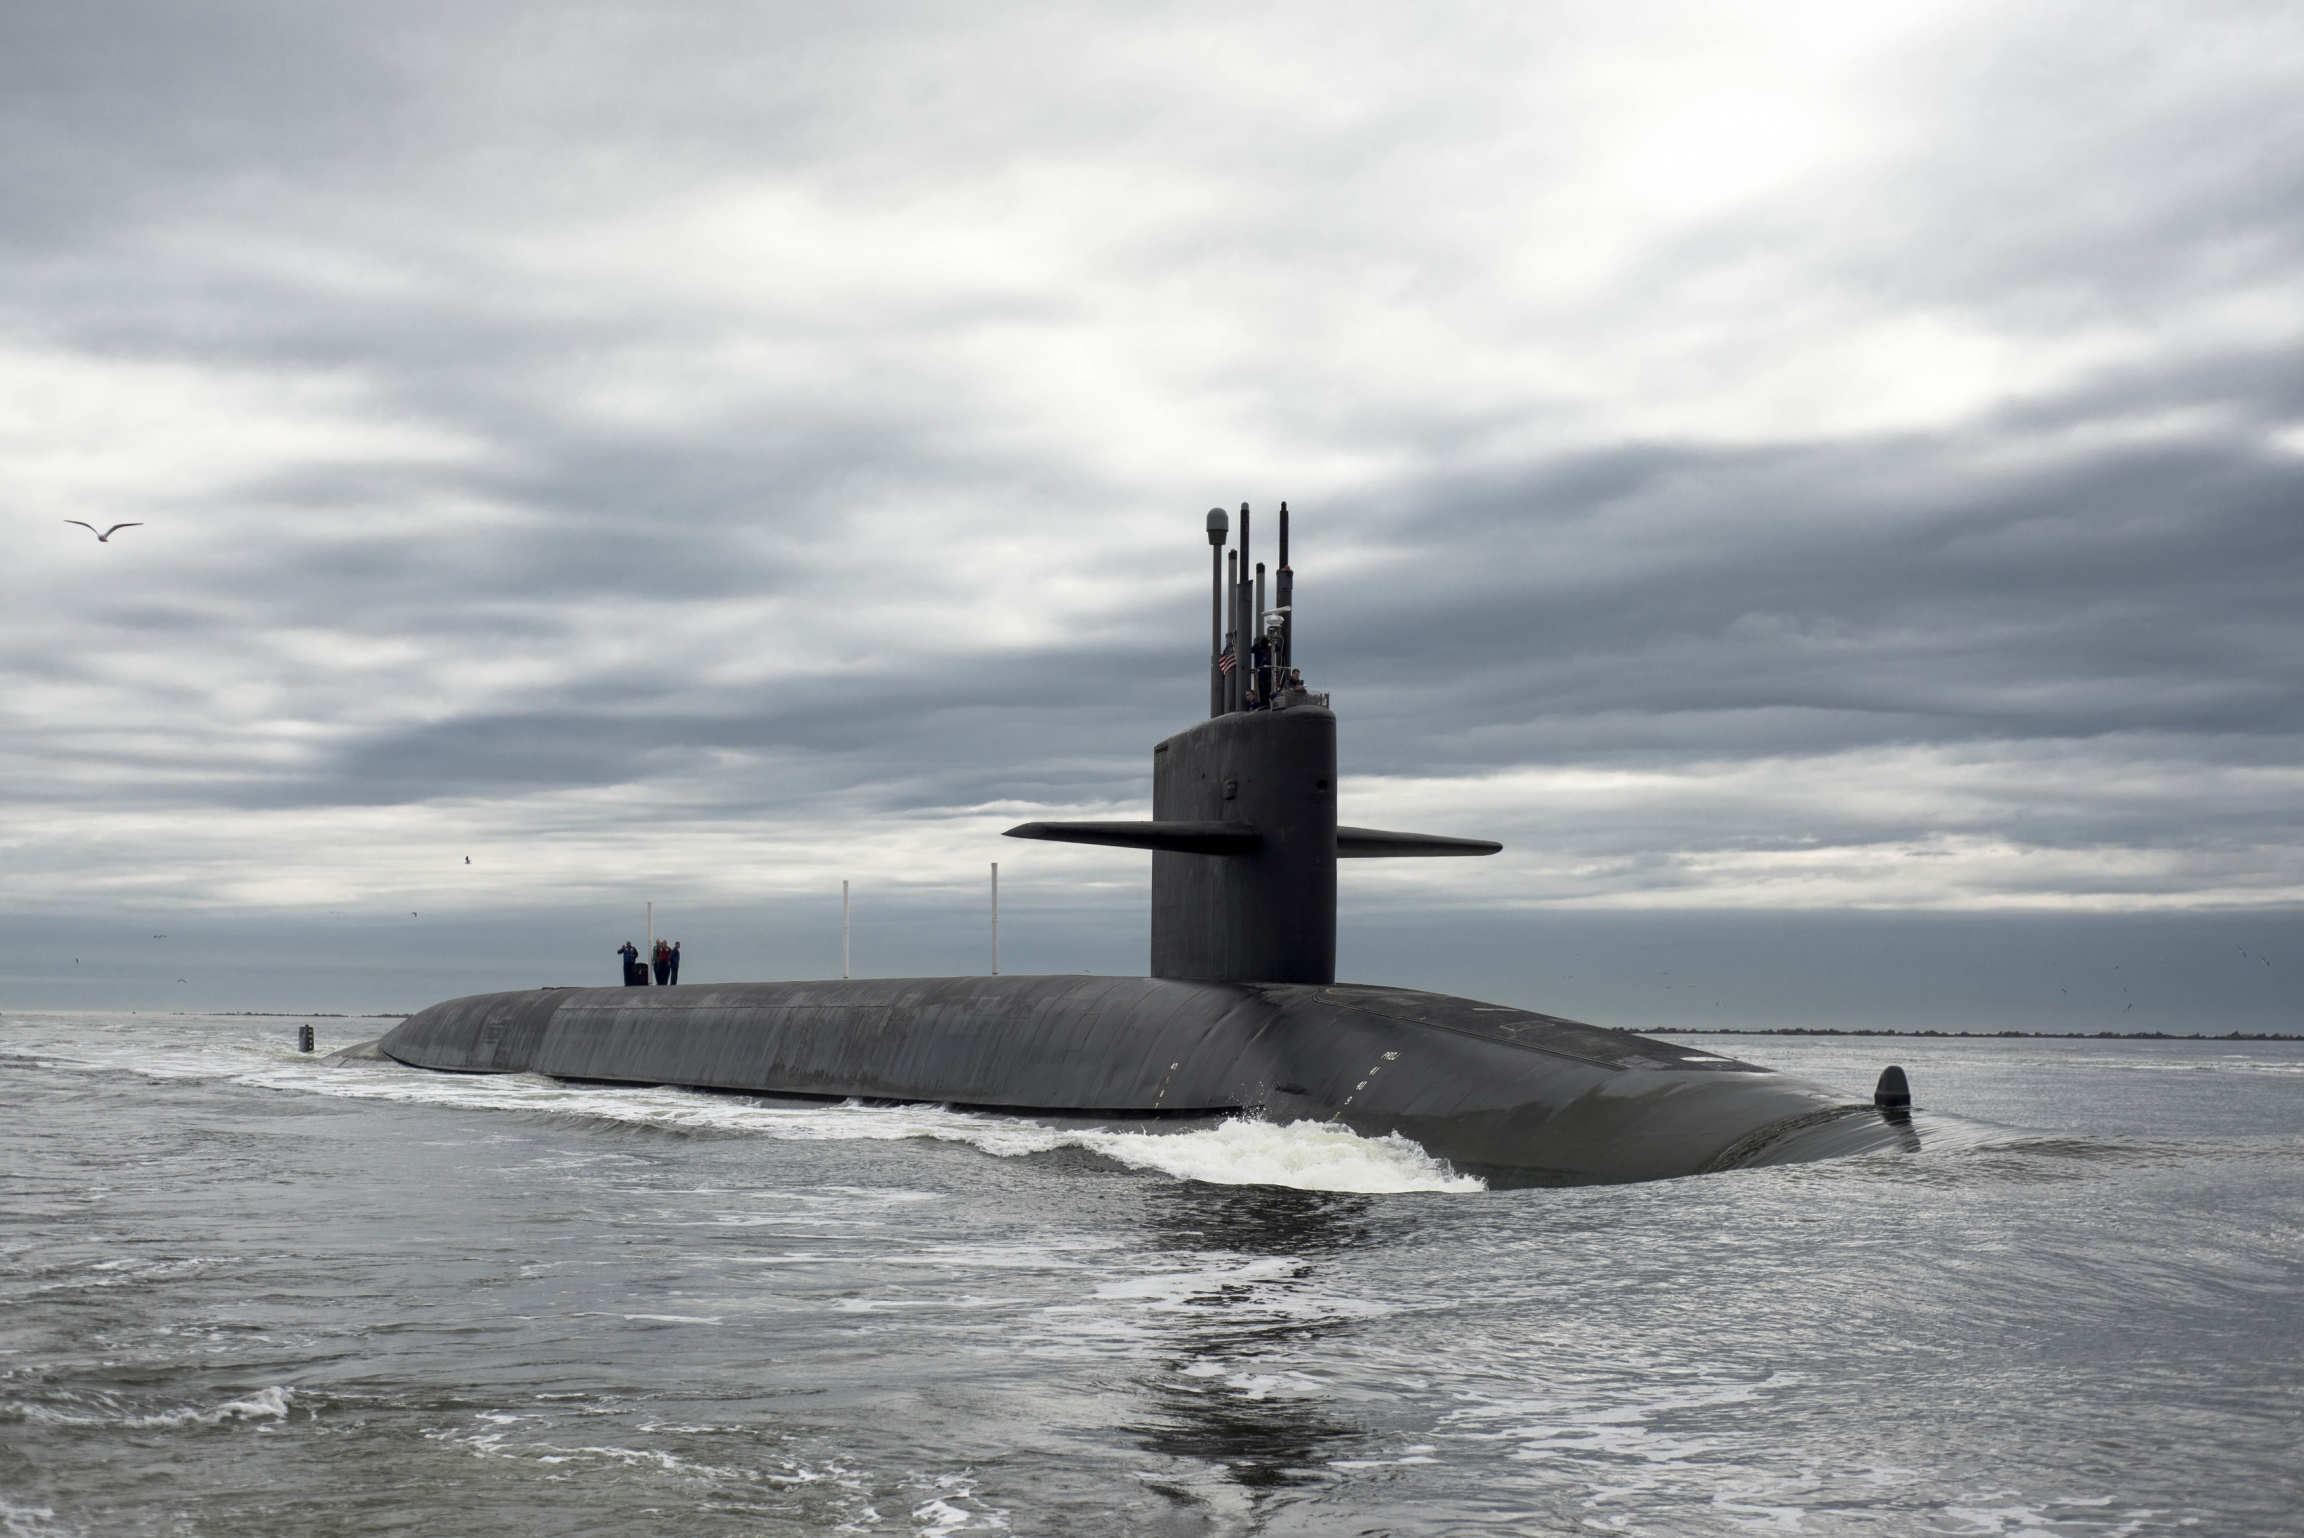 Top of grey submarine sticks out above the water.